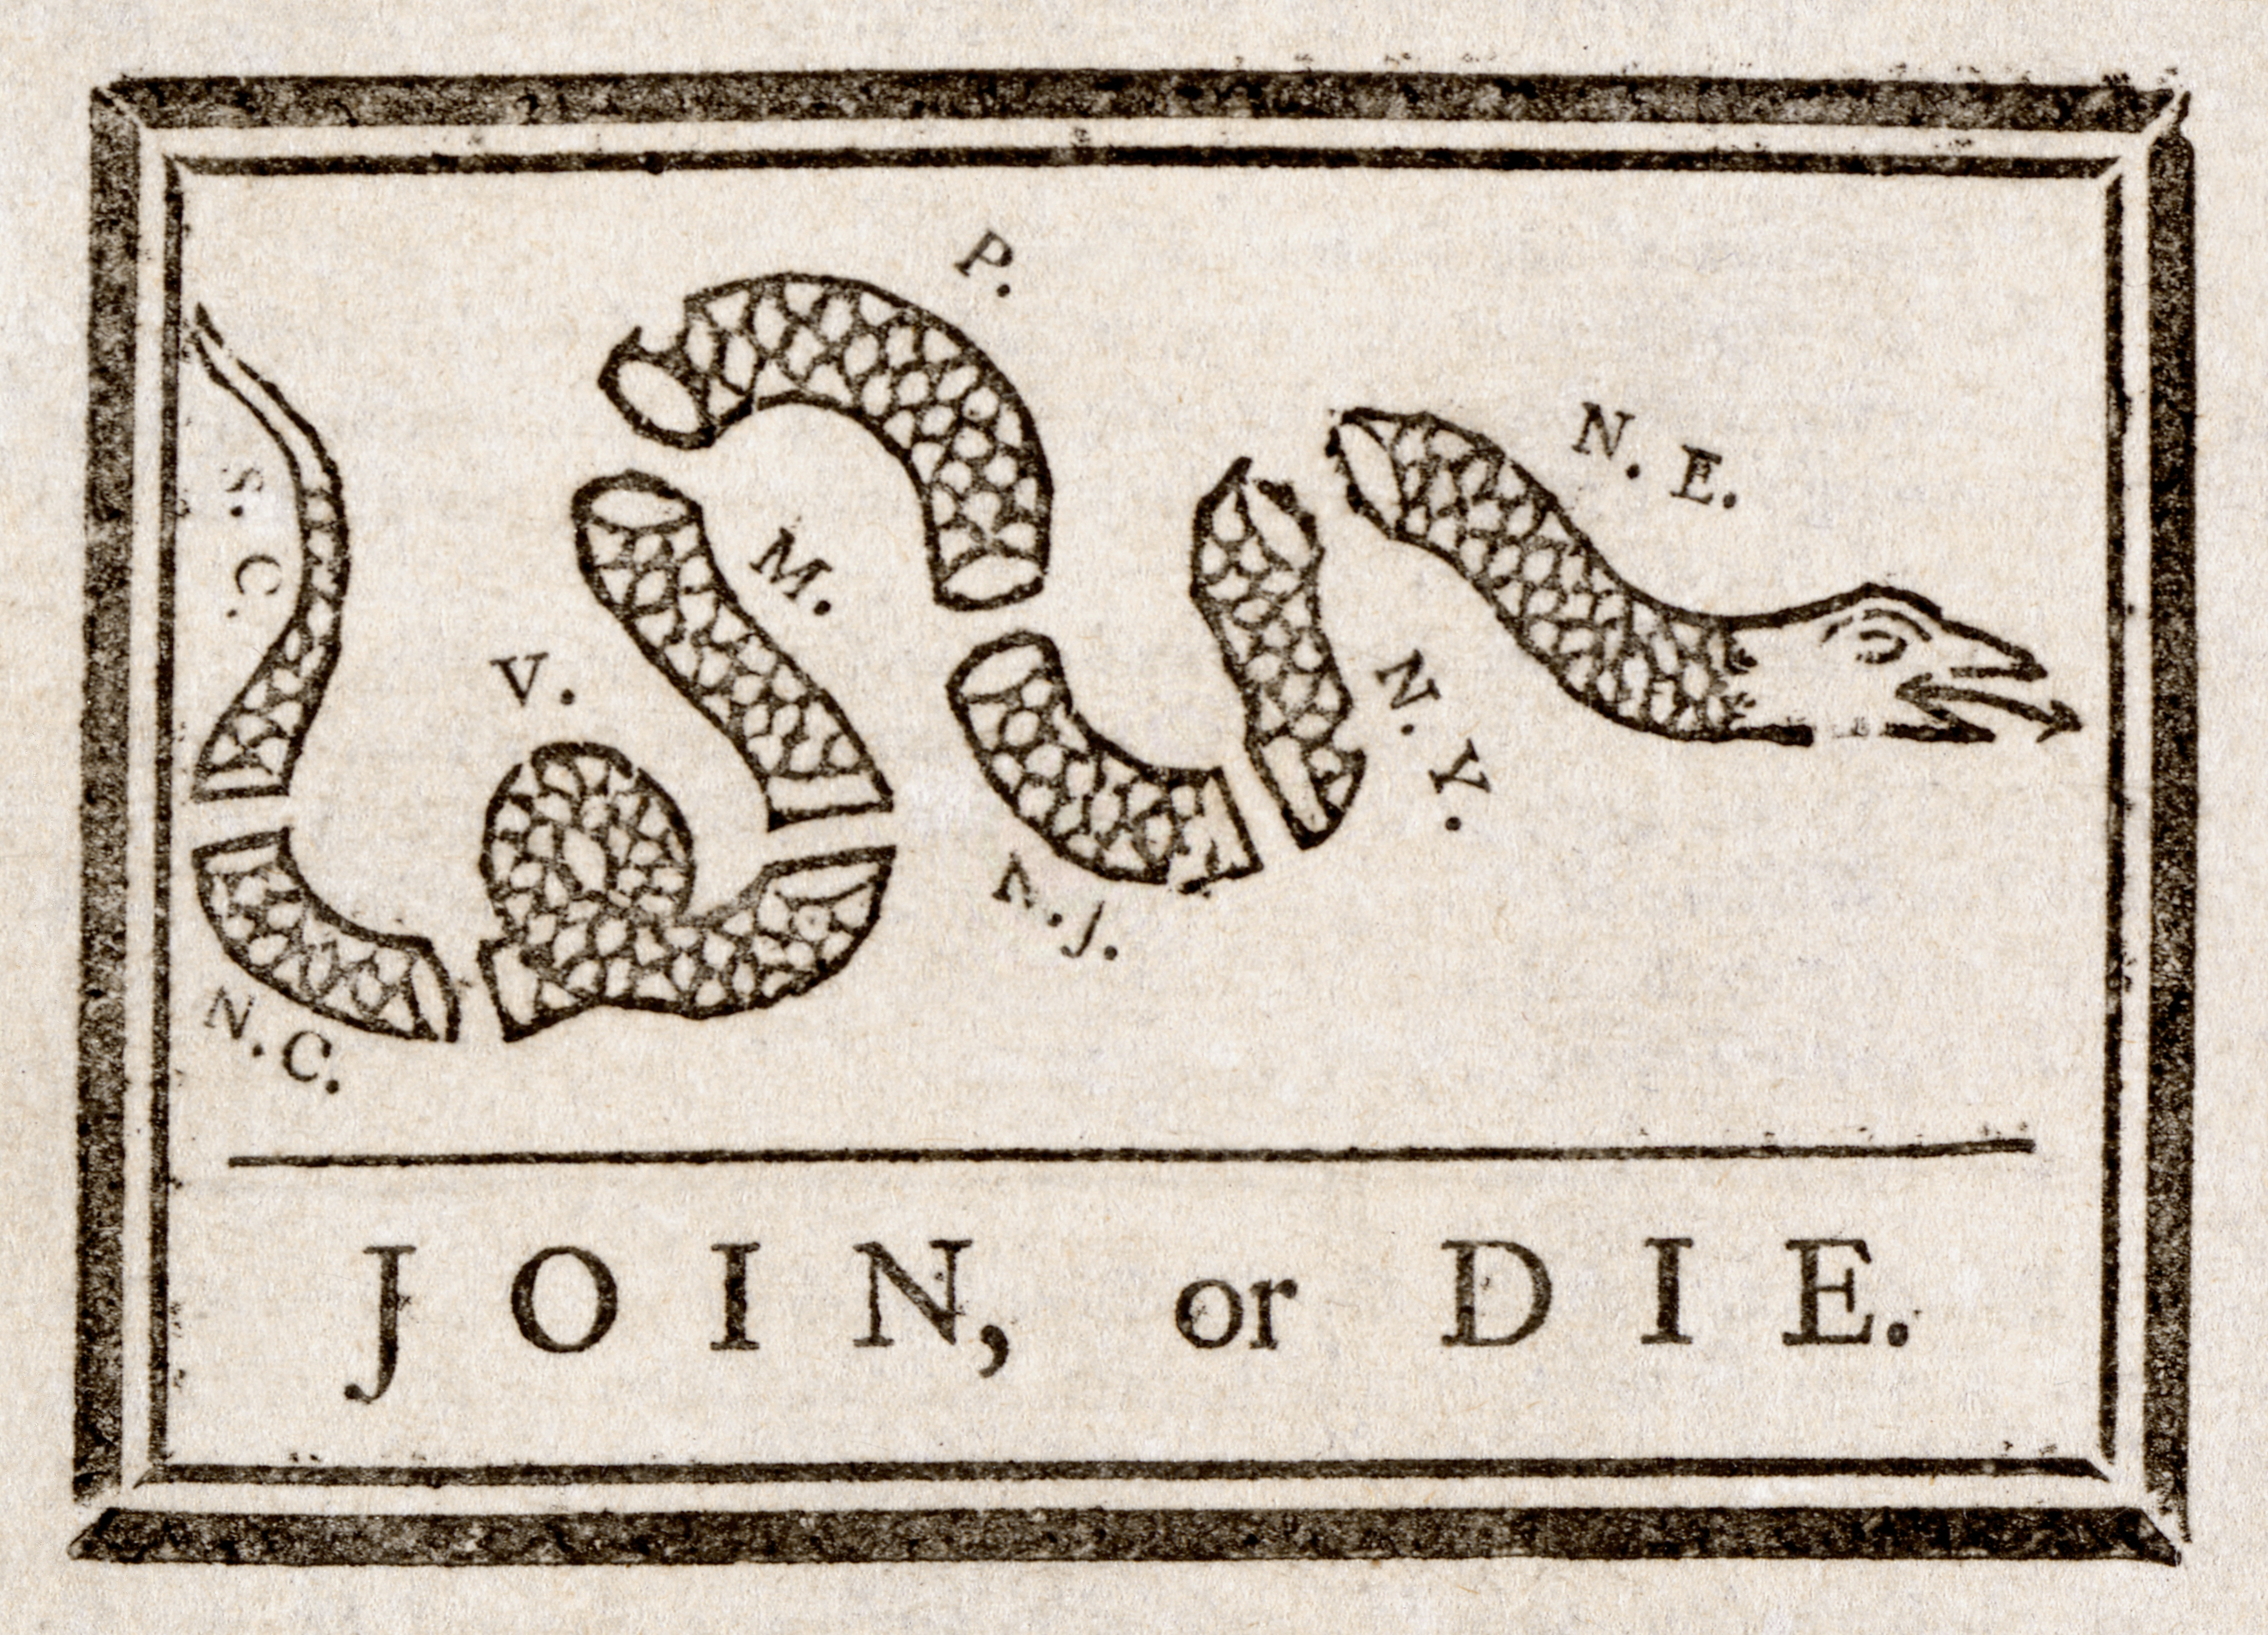 benjamin franklin join or die this political cartoon by franklin urged the colonies to join together during the french and n war seven years war